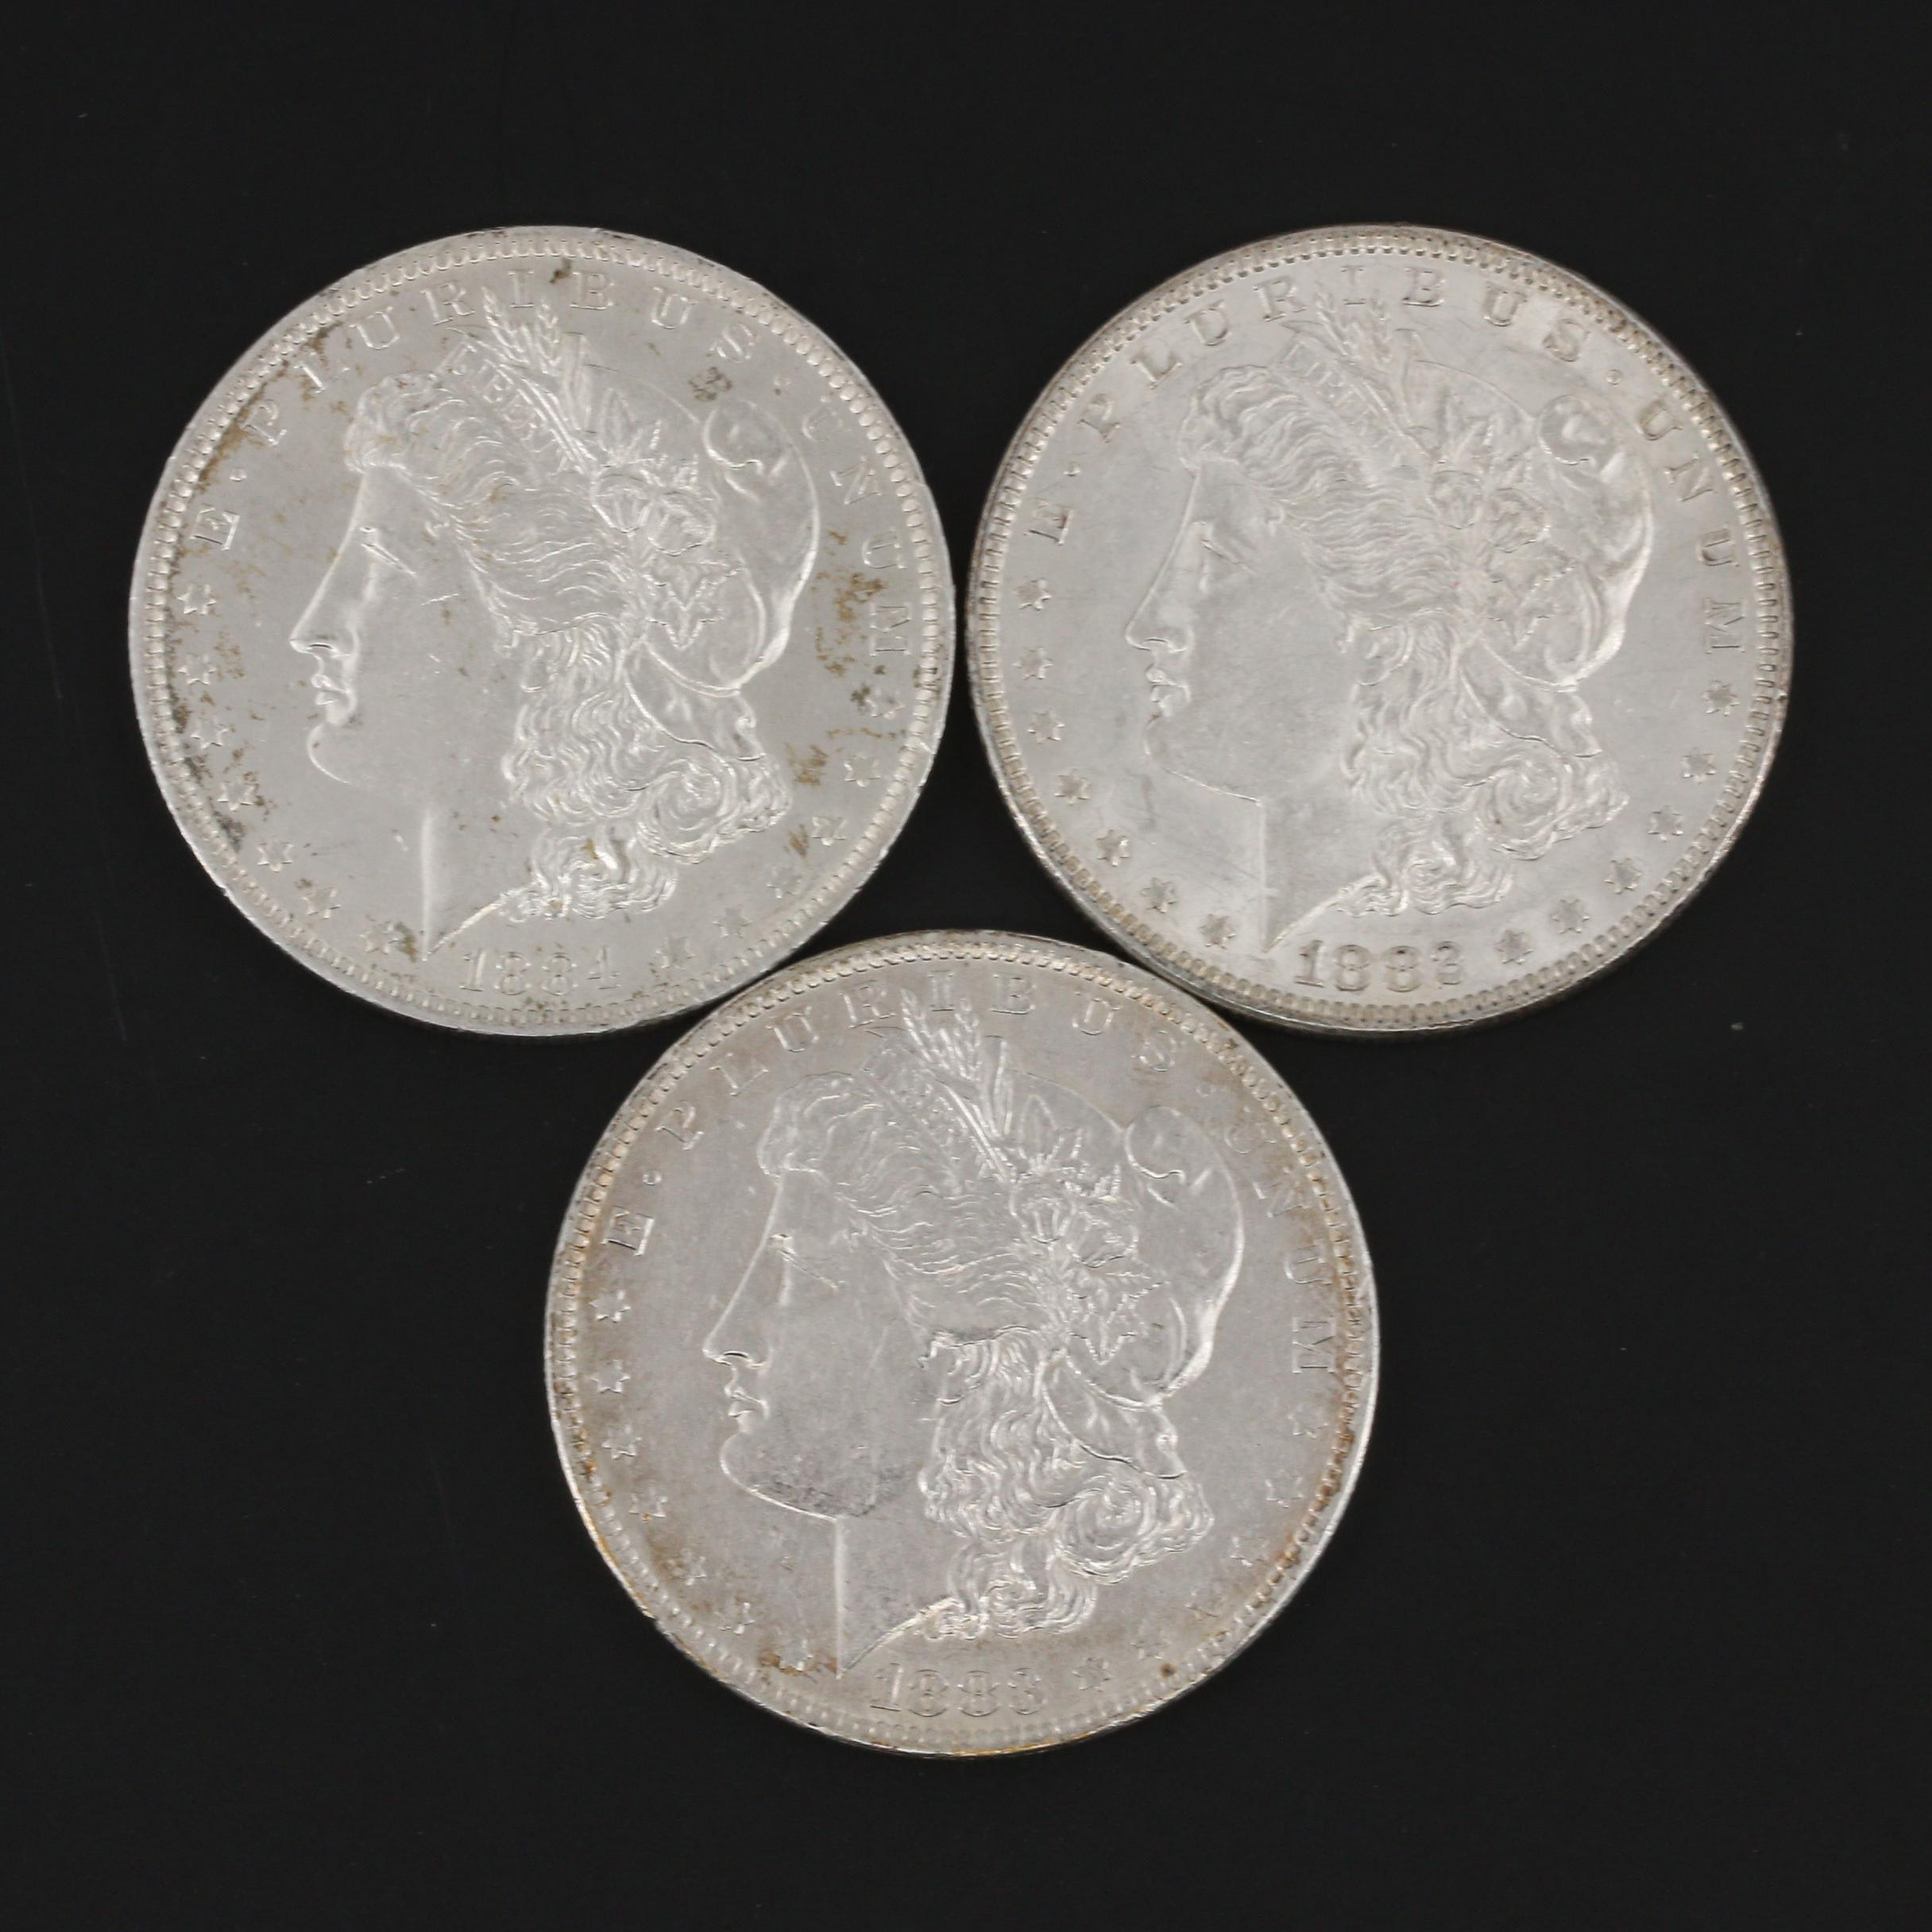 Group of Three Silver Morgan Dollars: 1882, 1883-O, and 1884-O